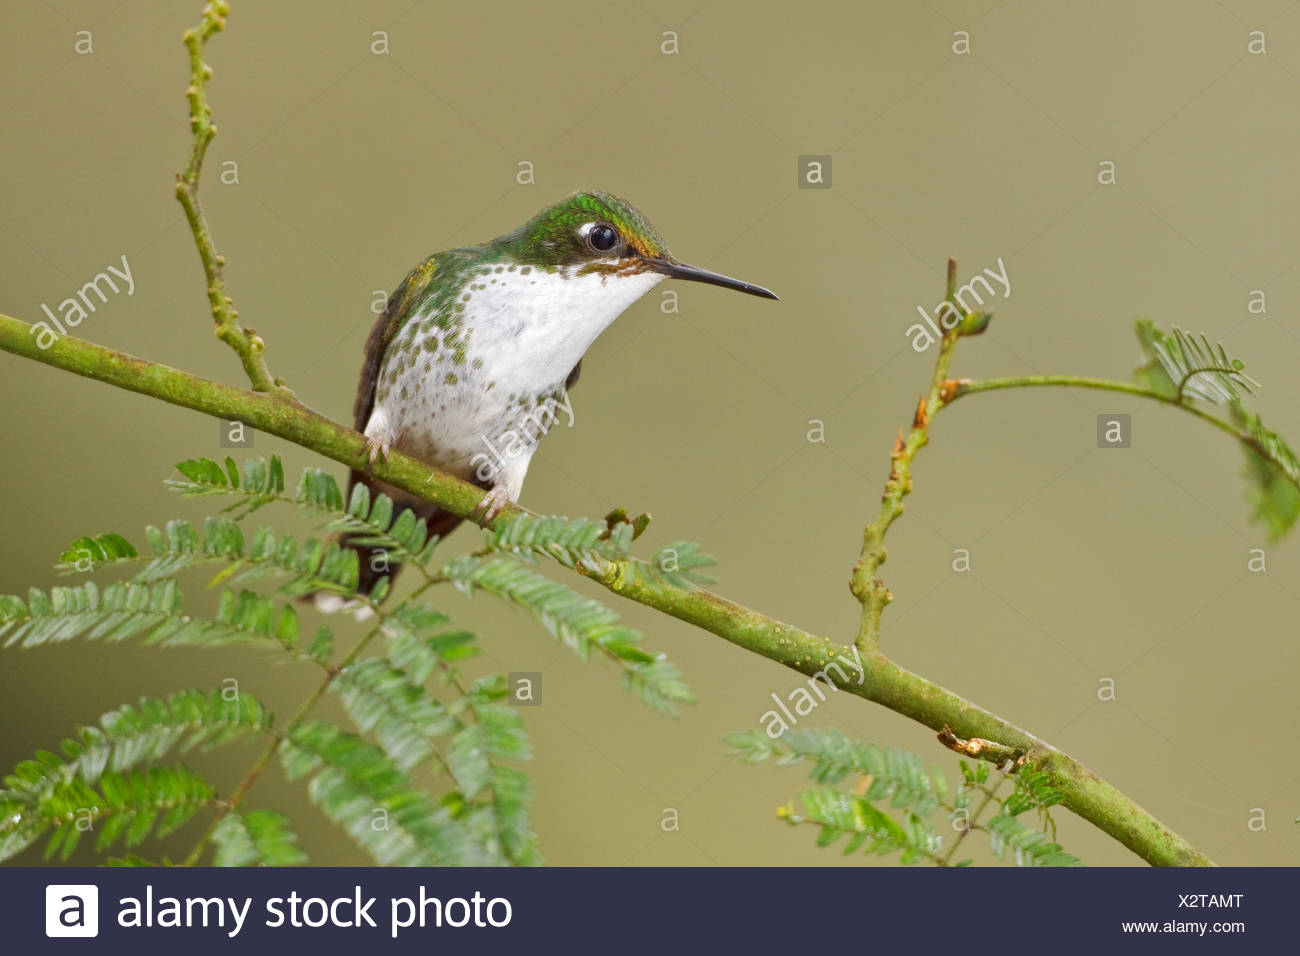 A Booted Racket-tail hummingbird (Ocreatus underwoodii) perched on a branch in the Tandayapa Valley of Ecuador. - Stock Image